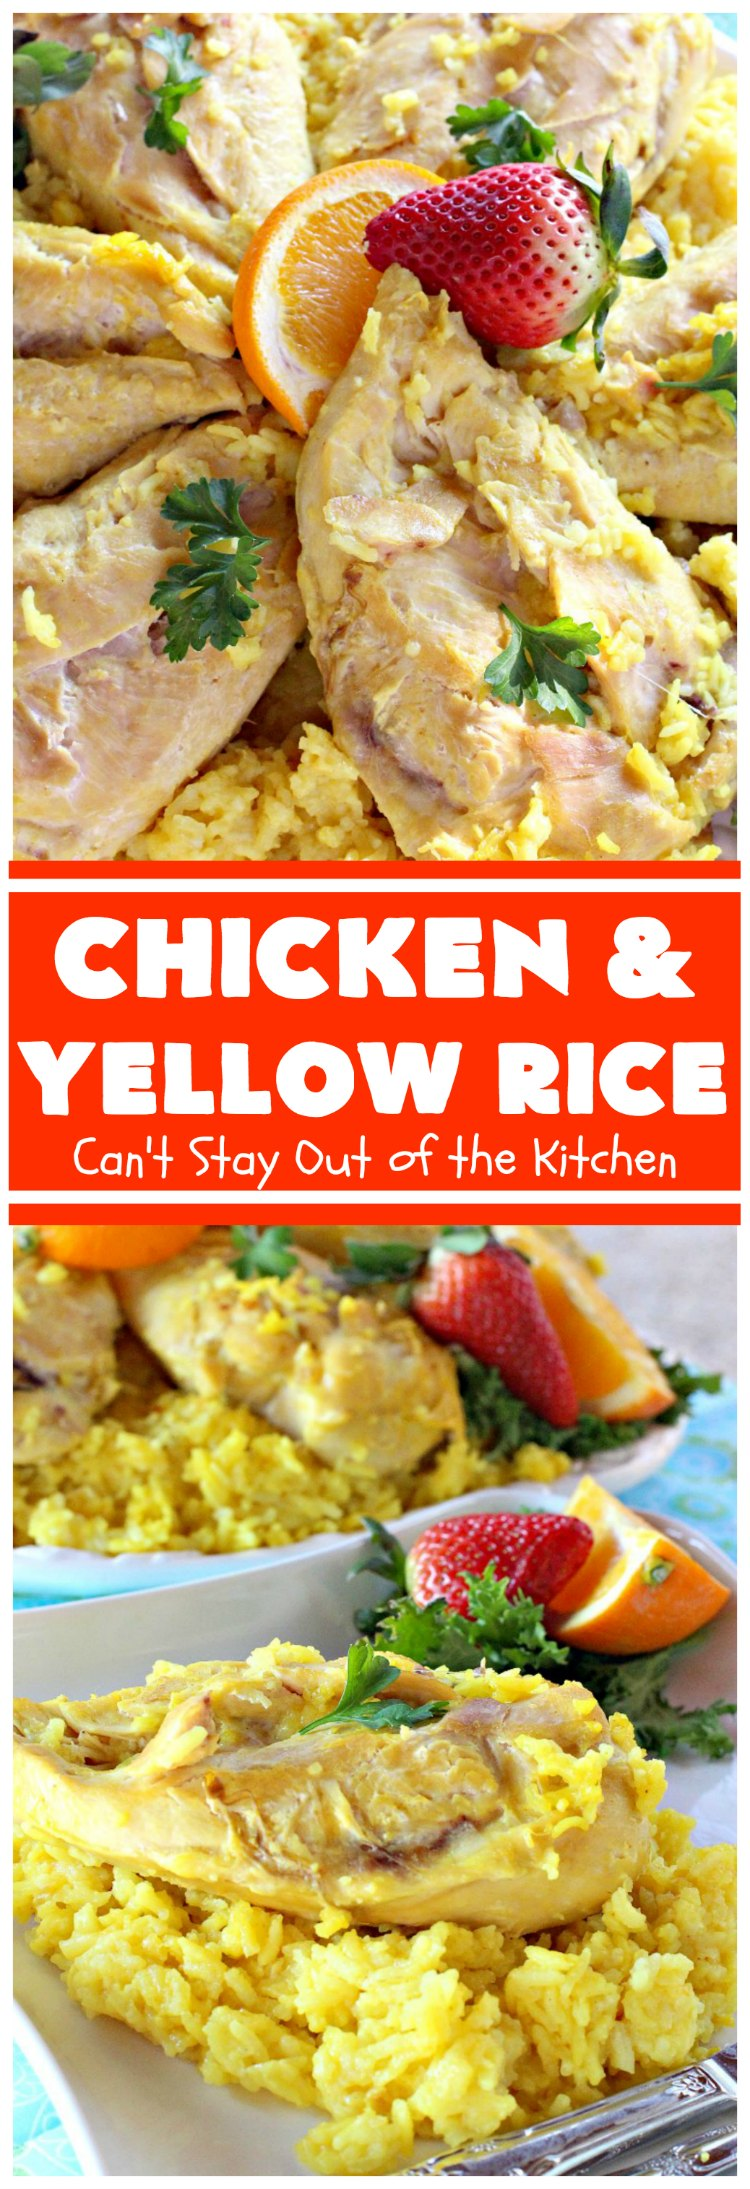 Chicken and Yellow Rice | Can't Stay Out of the Kitchen